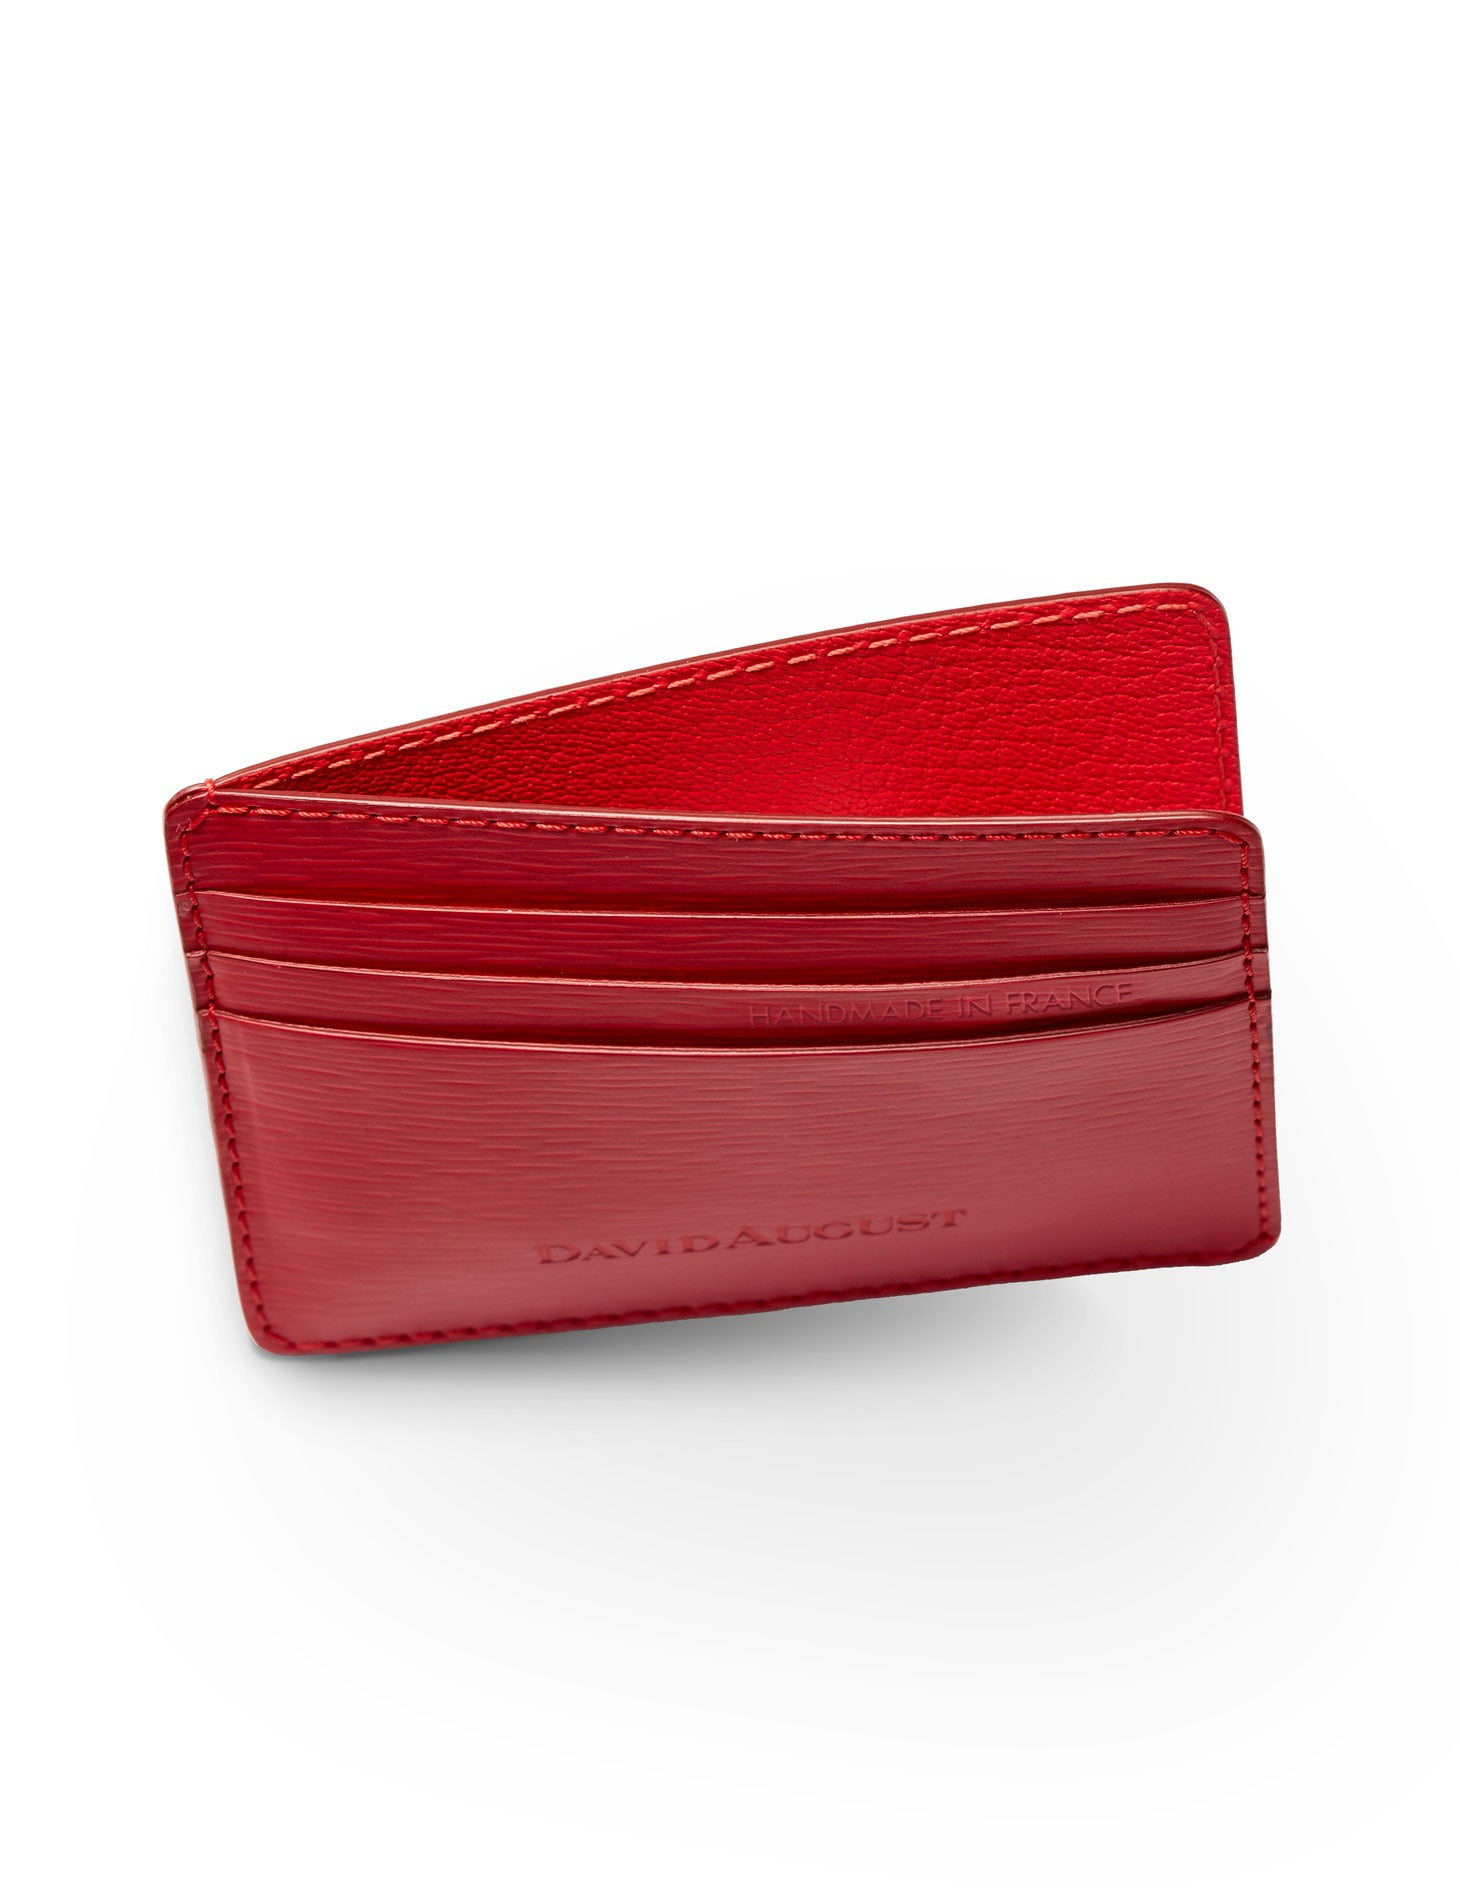 David August Luxury Genuine Epi Leather Card Case in Red